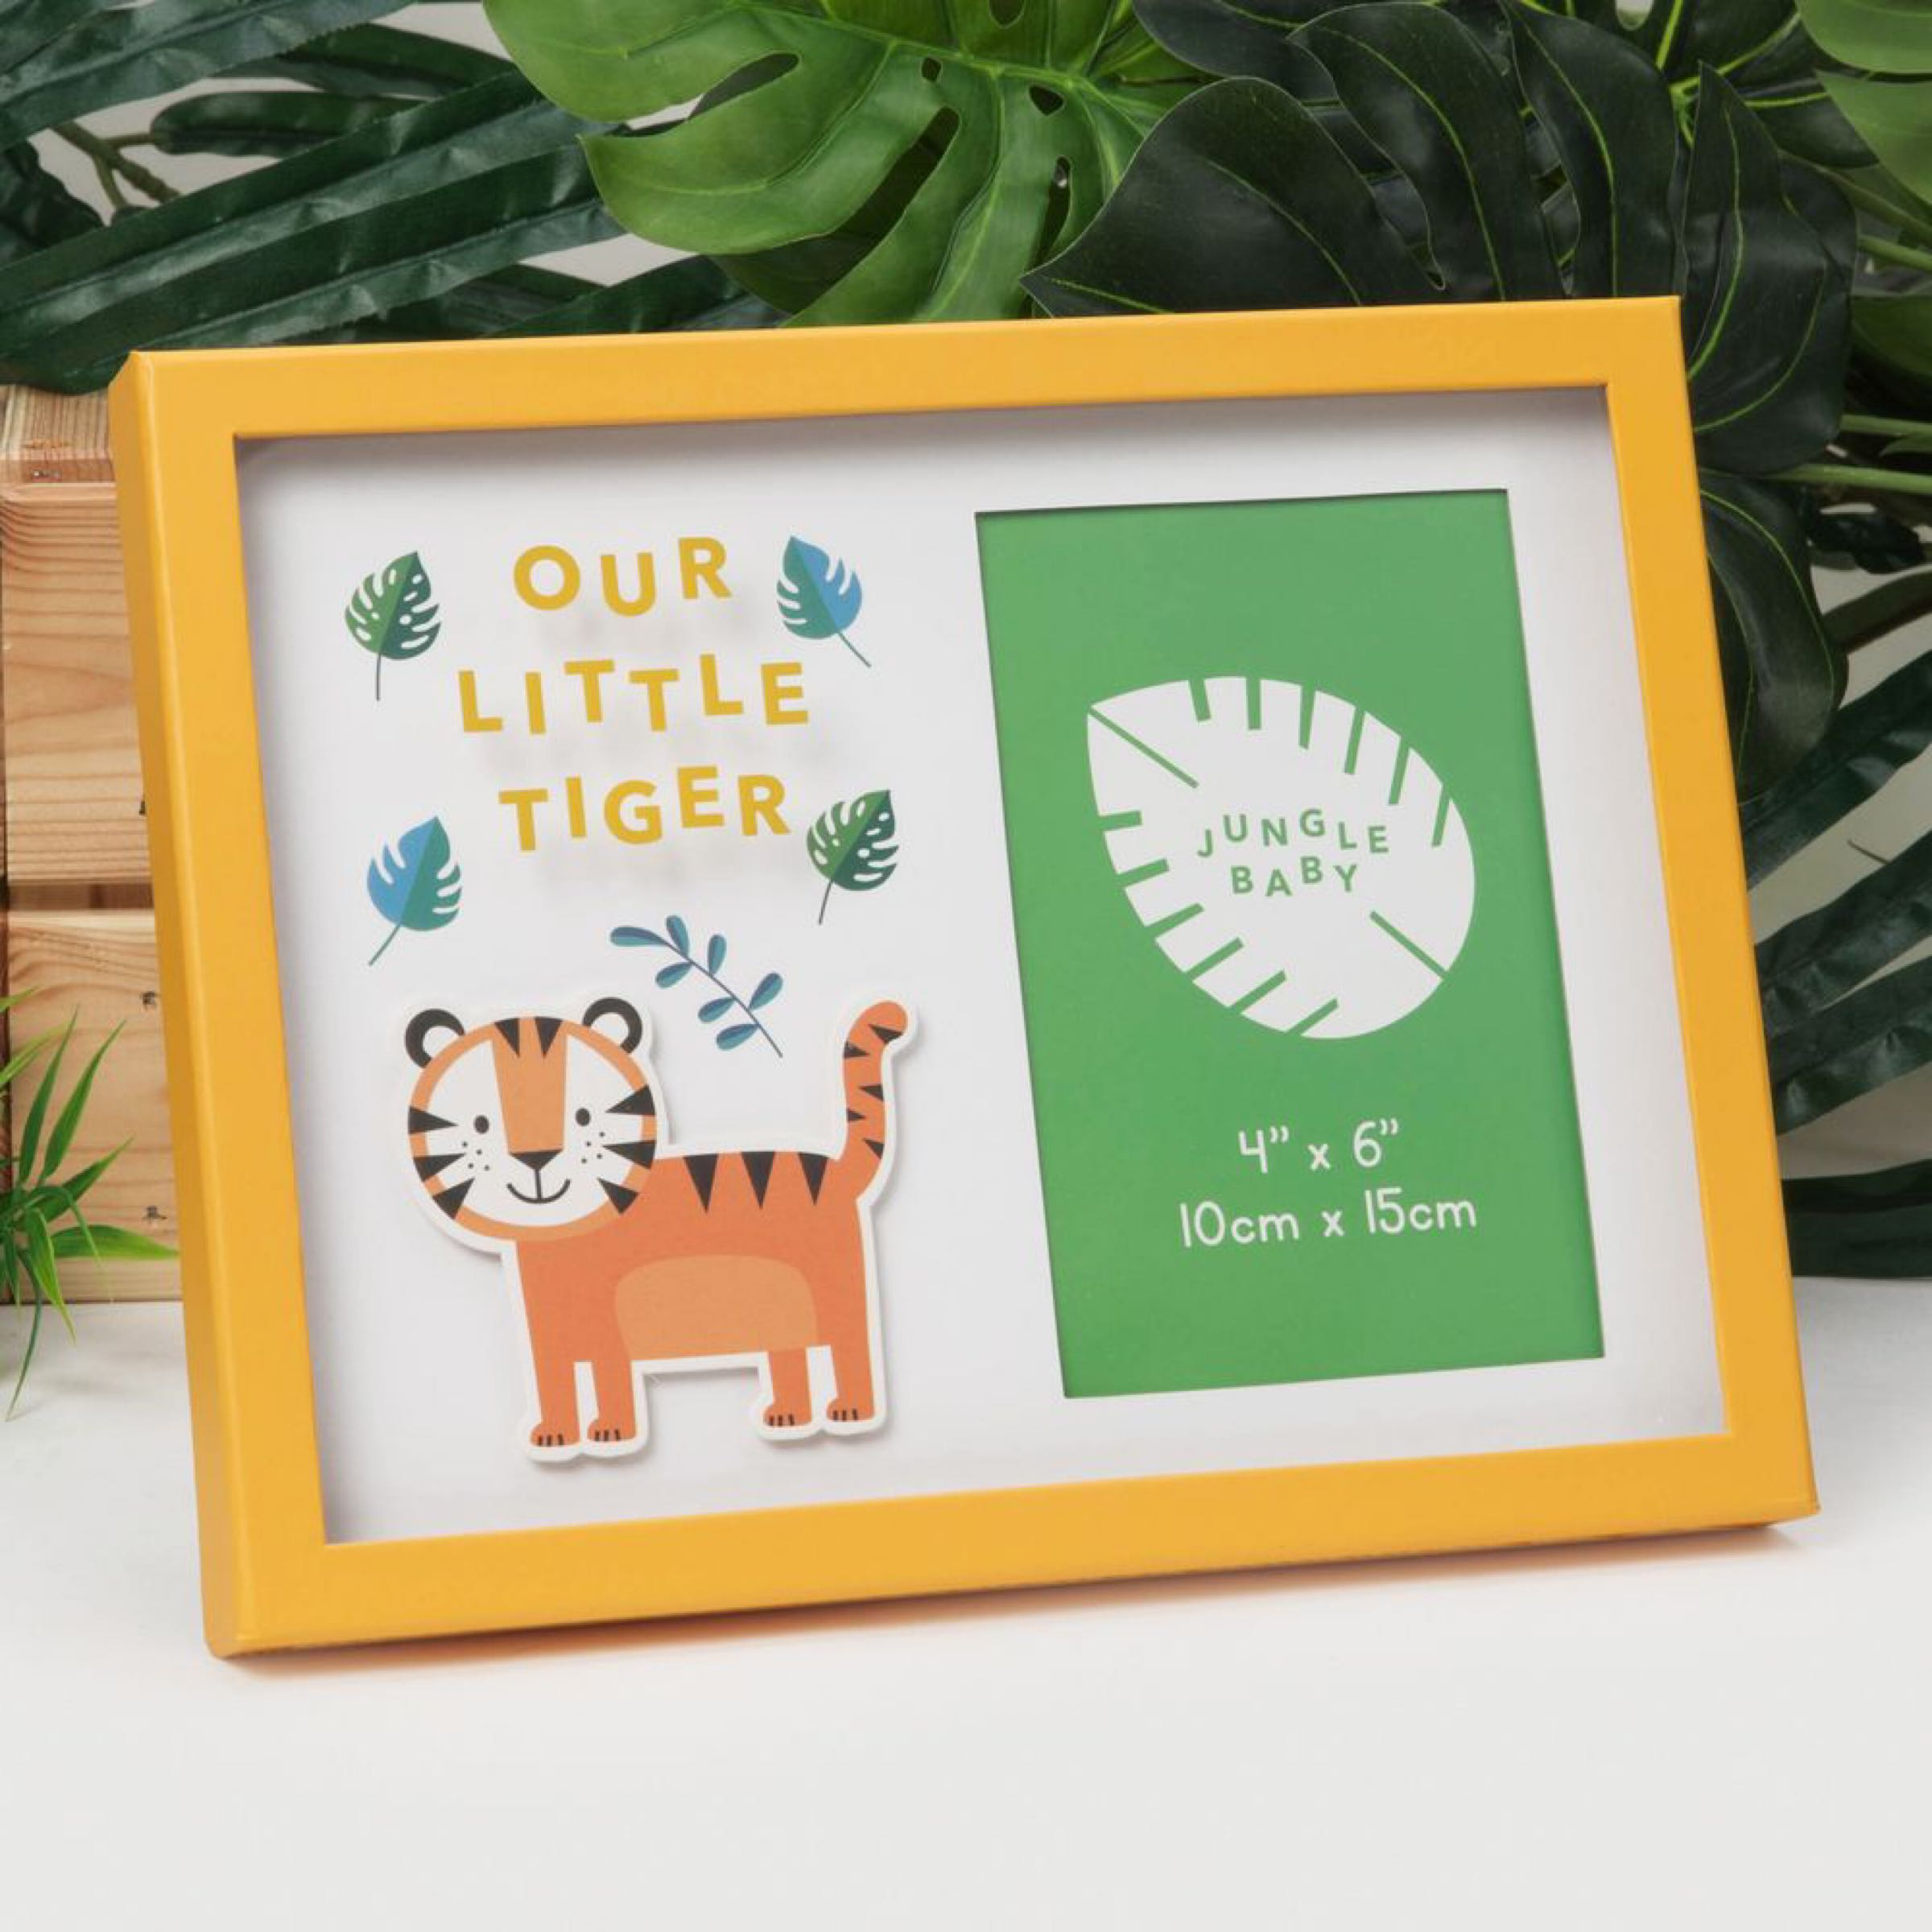 "Jungle Baby Paperwrap Frame 4""x6"" -Our Little Tiger"